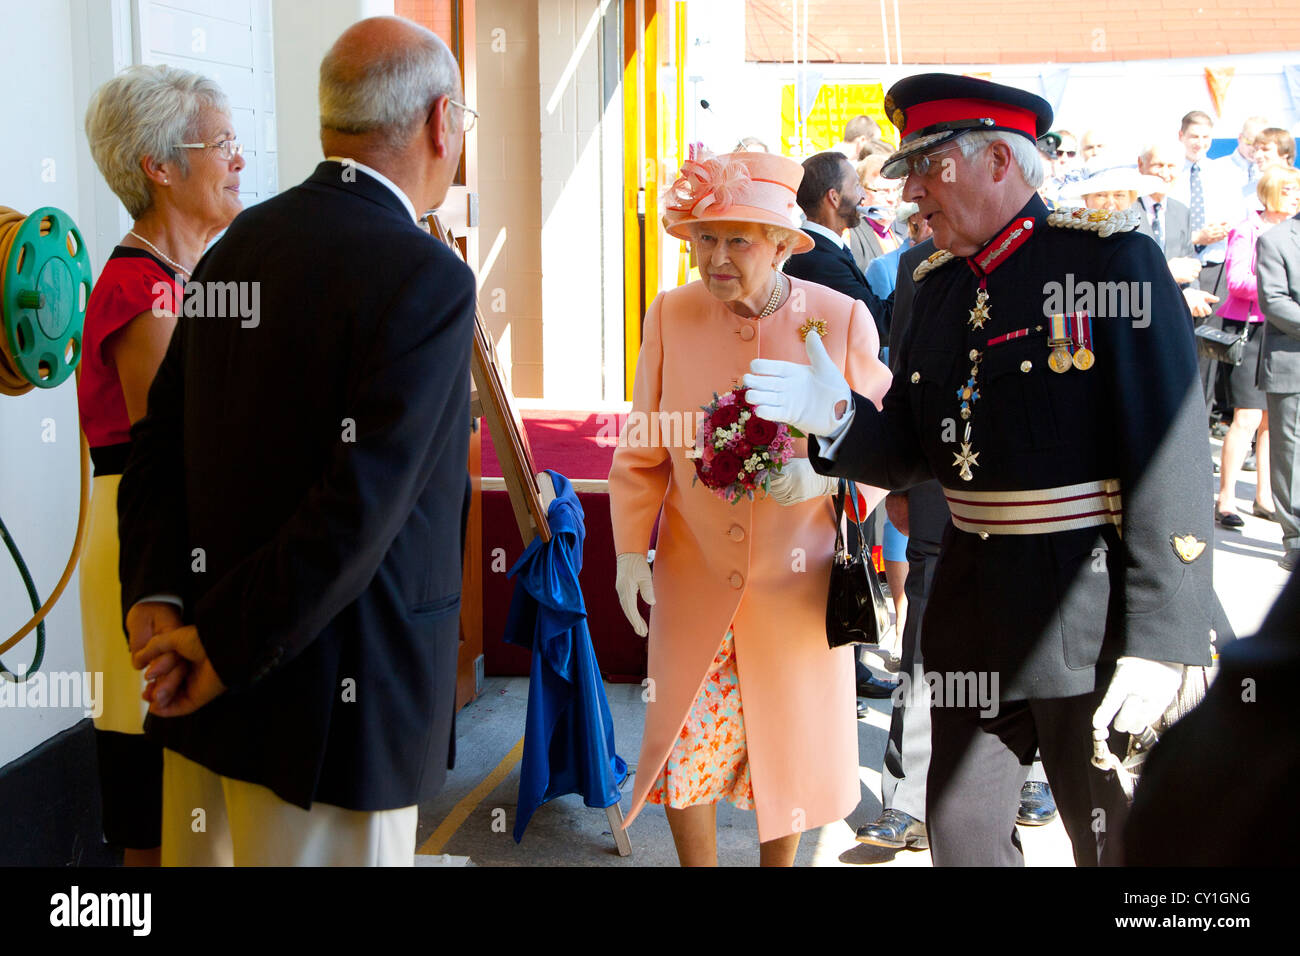 Her Majesty Queen Elizabeth the second Jubilee visit to Cowes Isle of Wight England to open new RNLI  inshore lifeboat - Stock Image